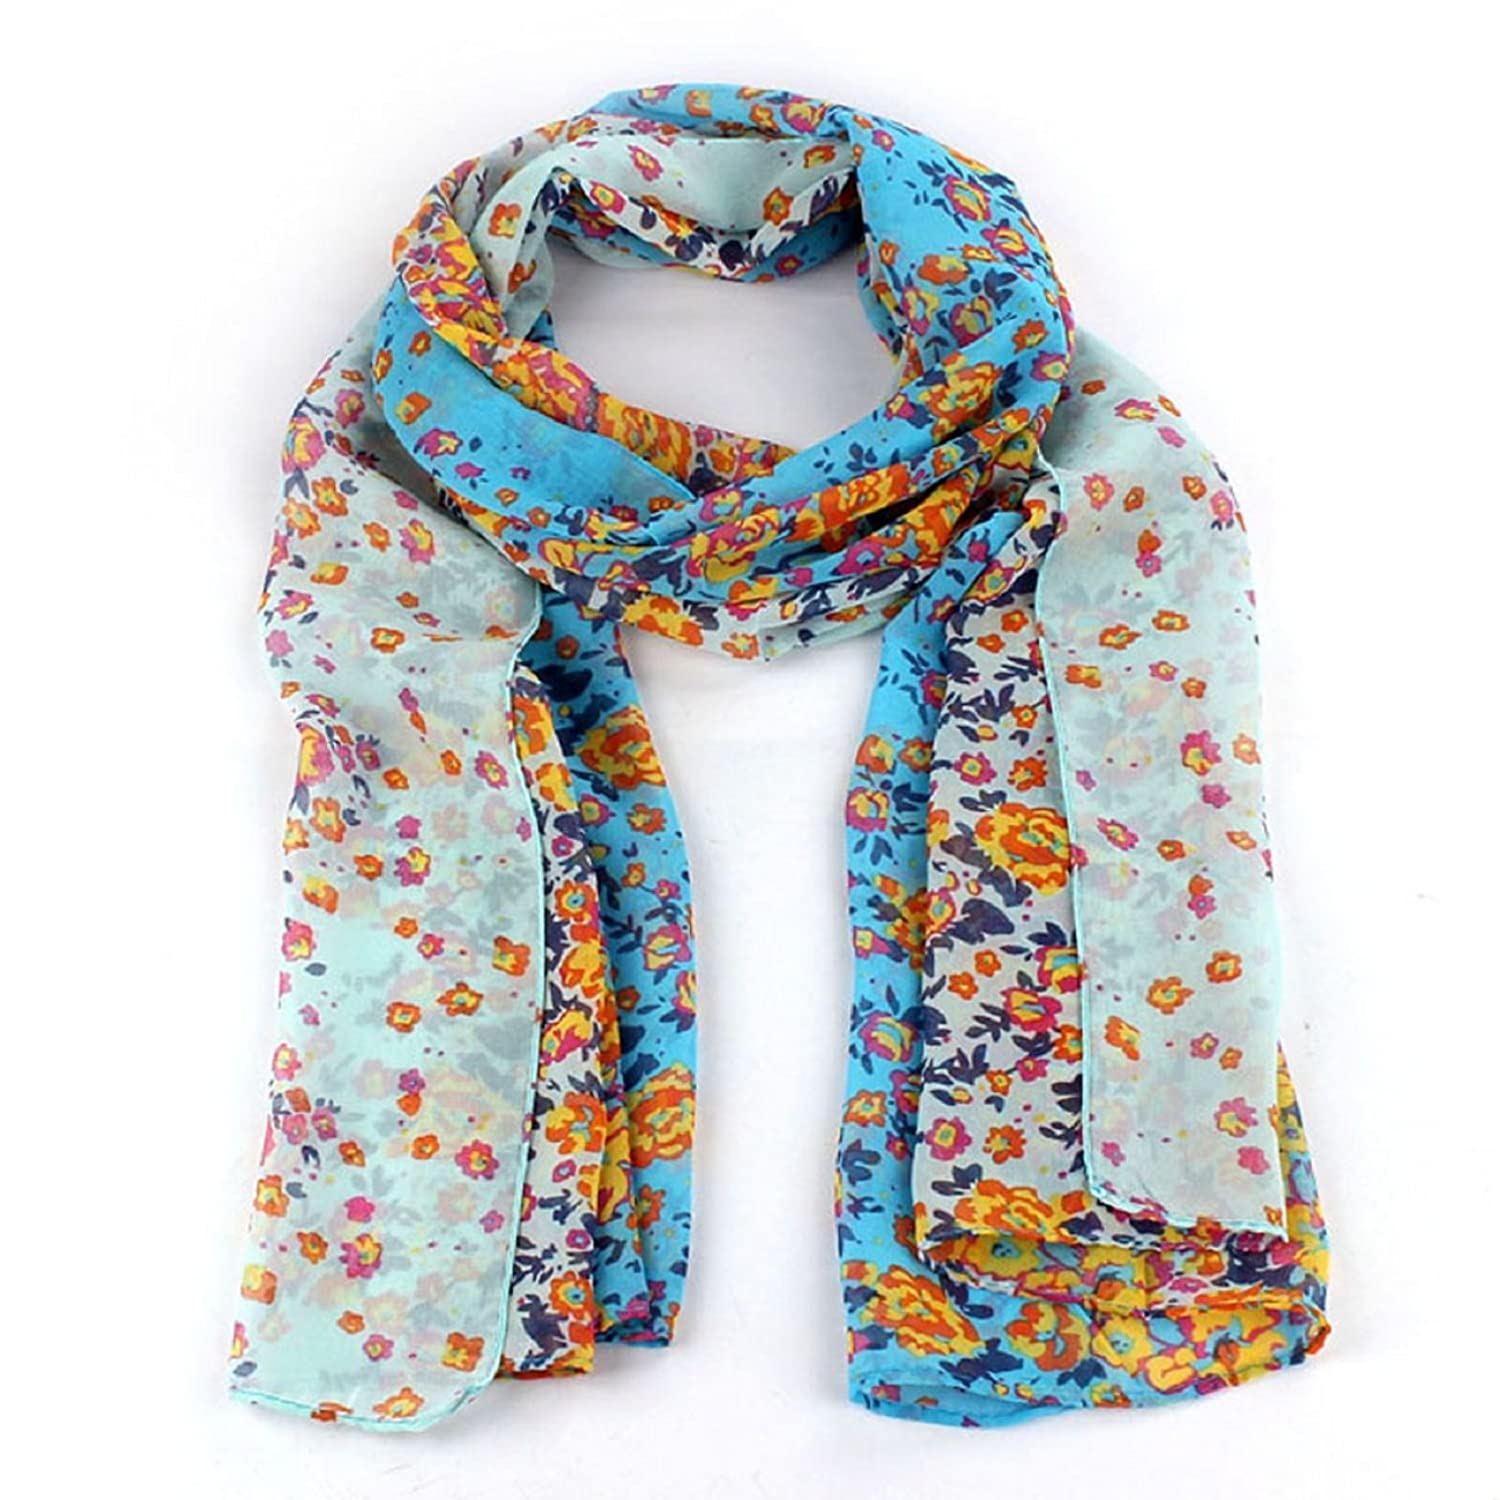 Tonsee Muffler Scarves Long Wraps Shawl Floral Scarf